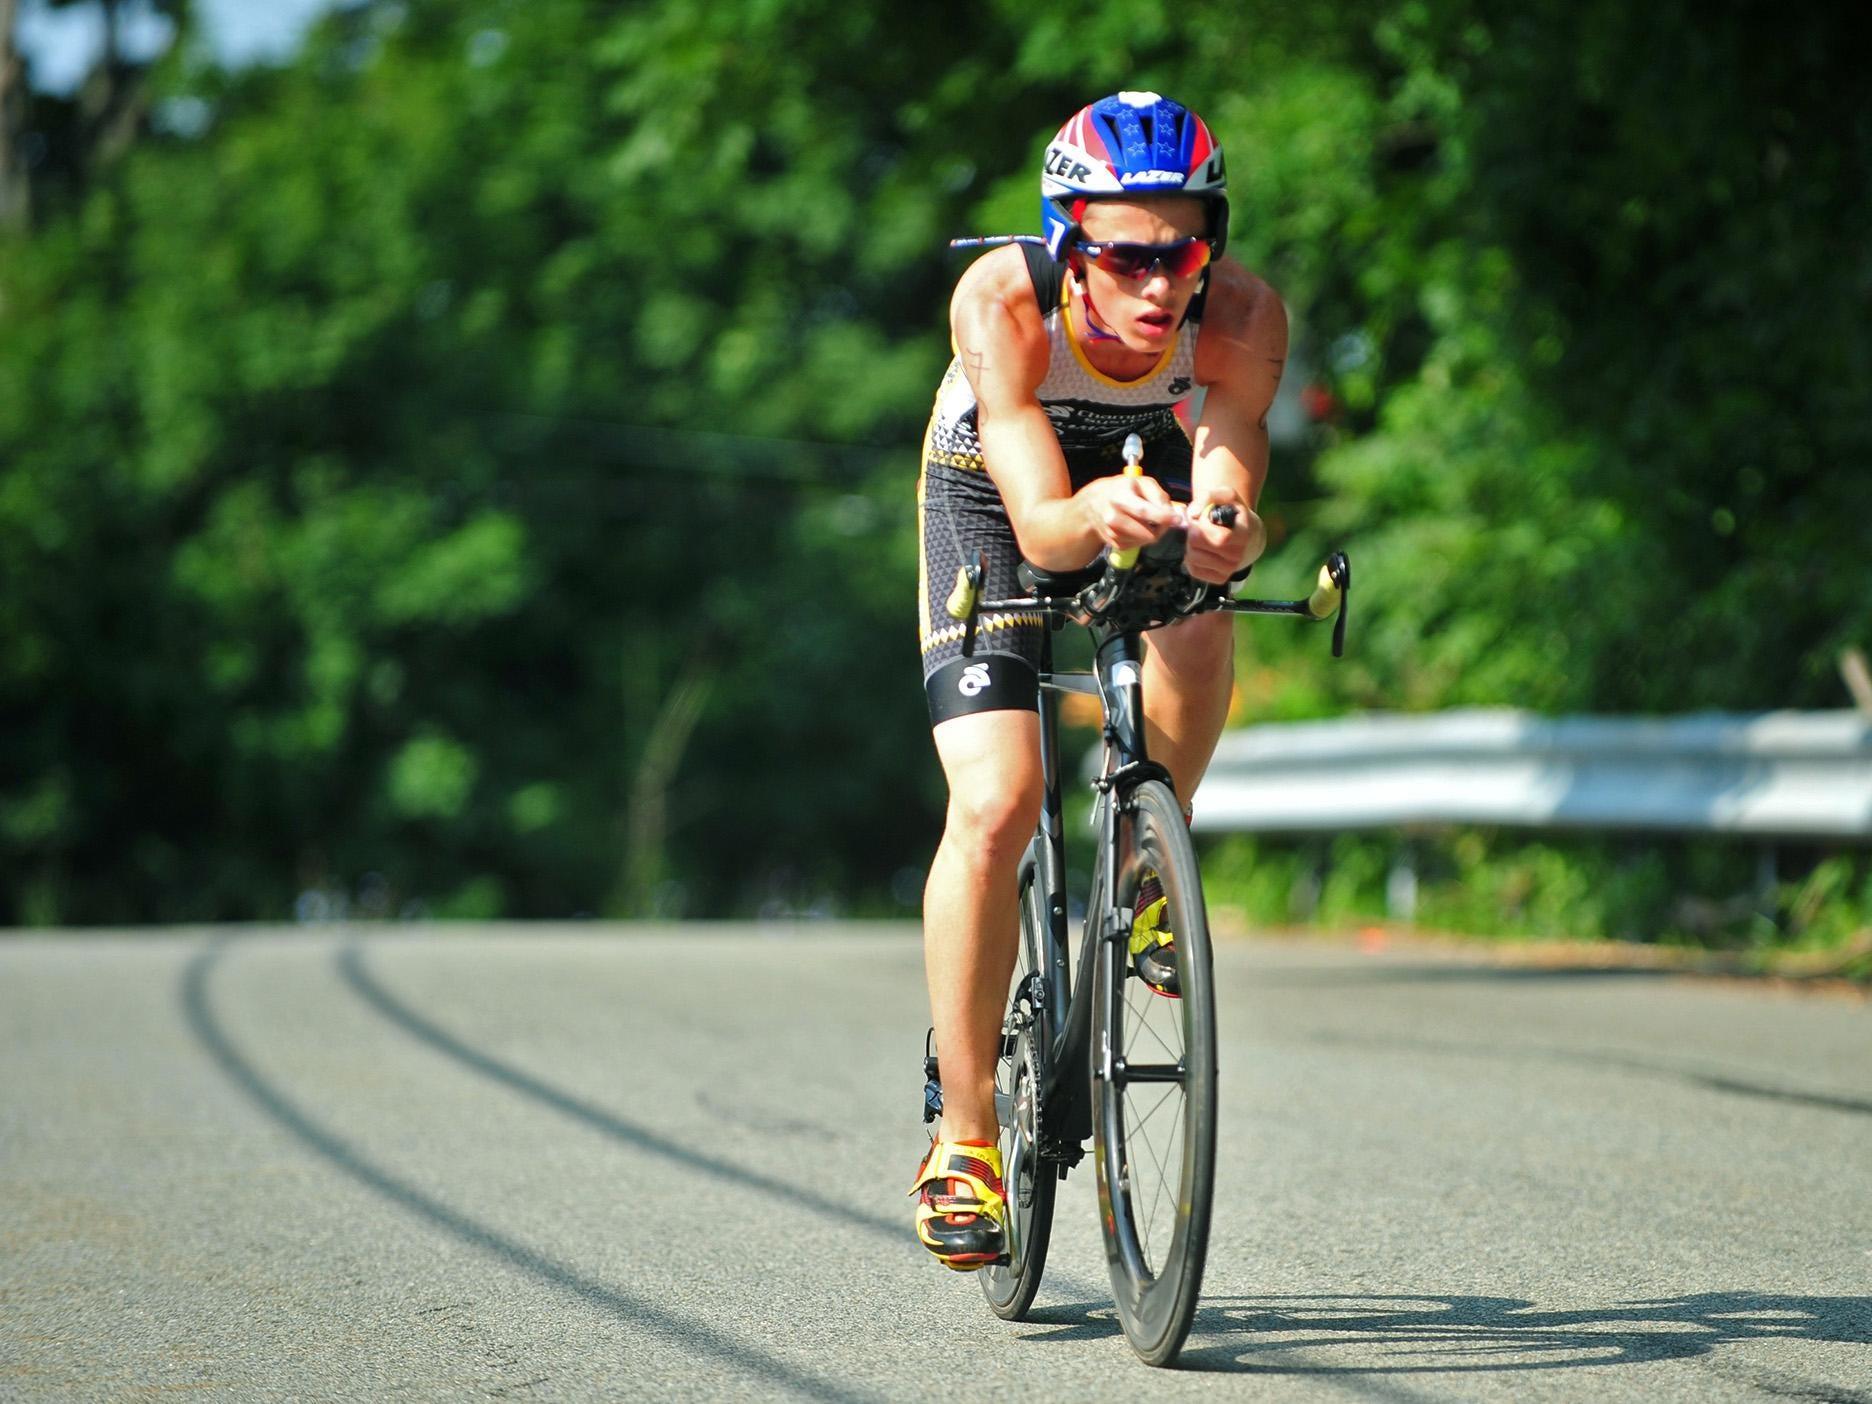 Bobby Hammond, 16, of Flanders, took first place. Here, he comes in first on the cycling leg.